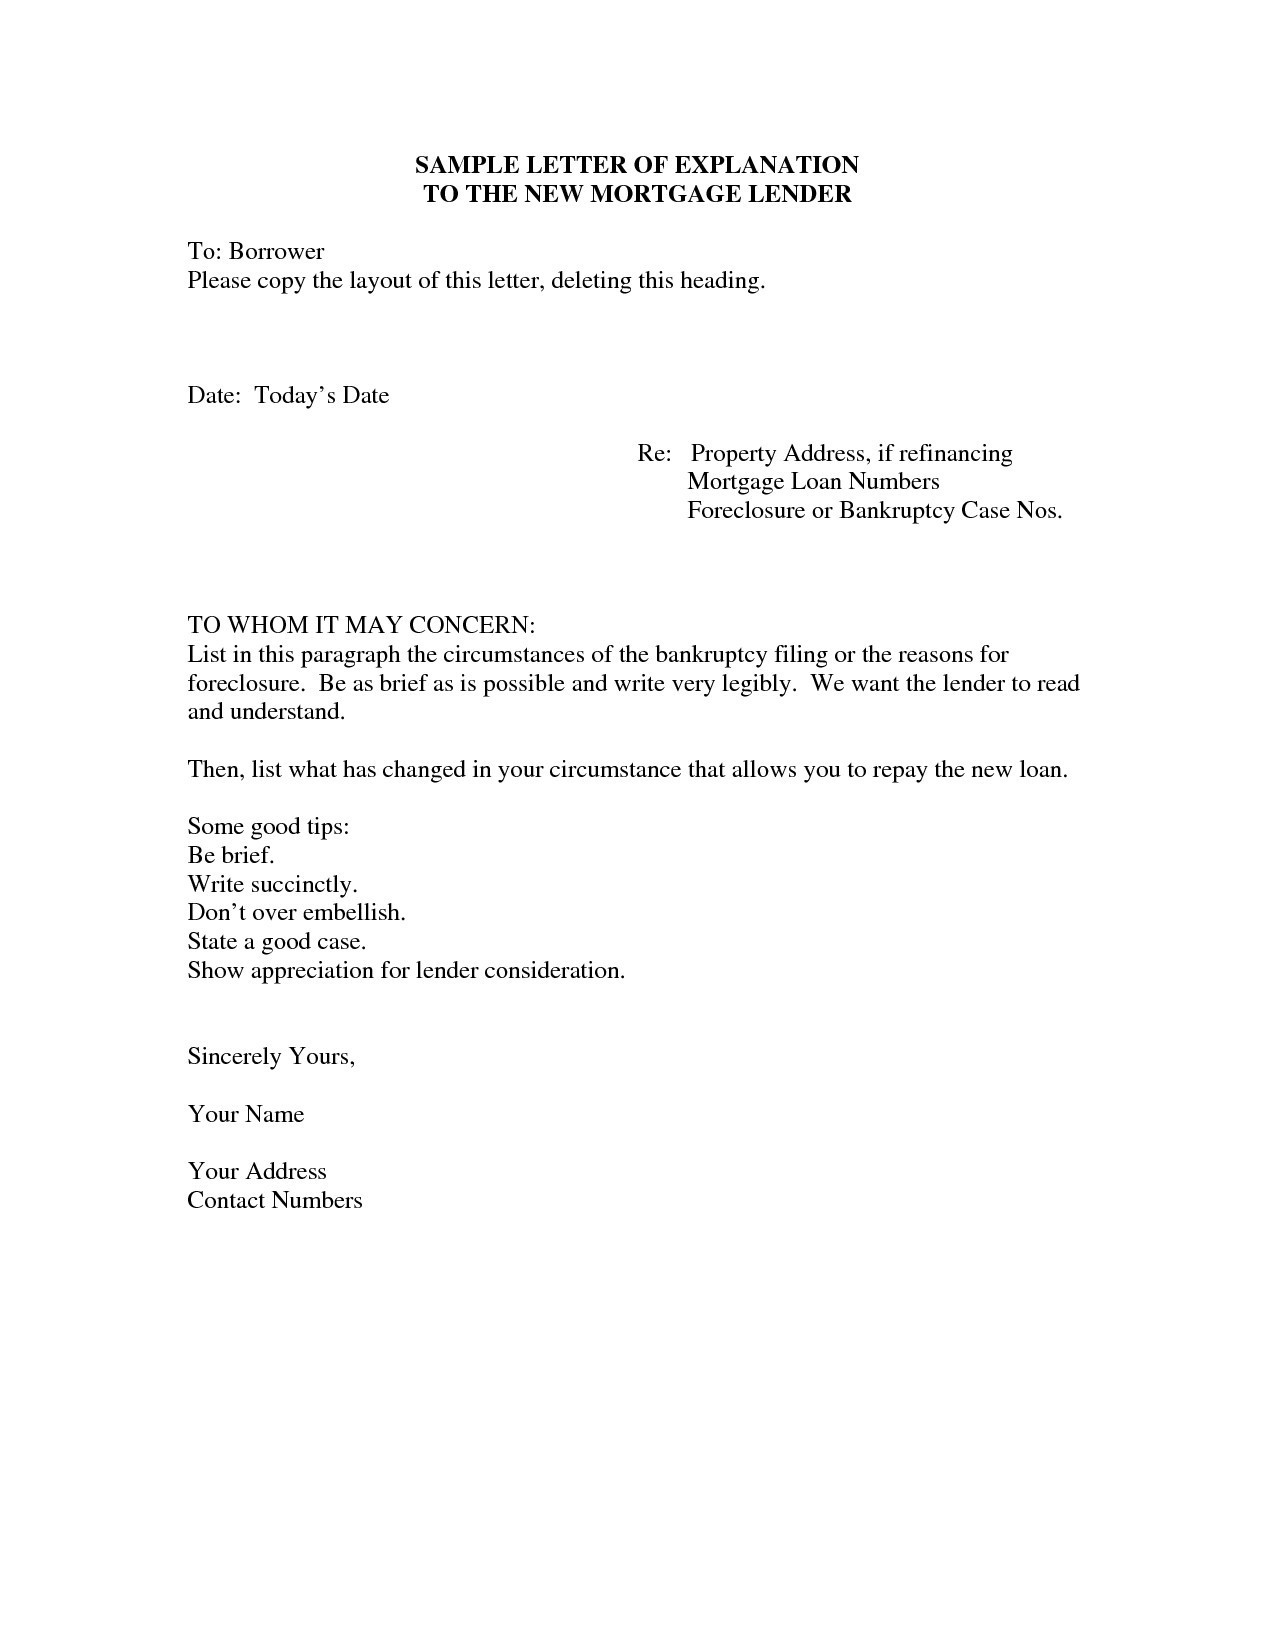 Free foreclosure Letter Template - Bankruptcy Letter Explanation Template